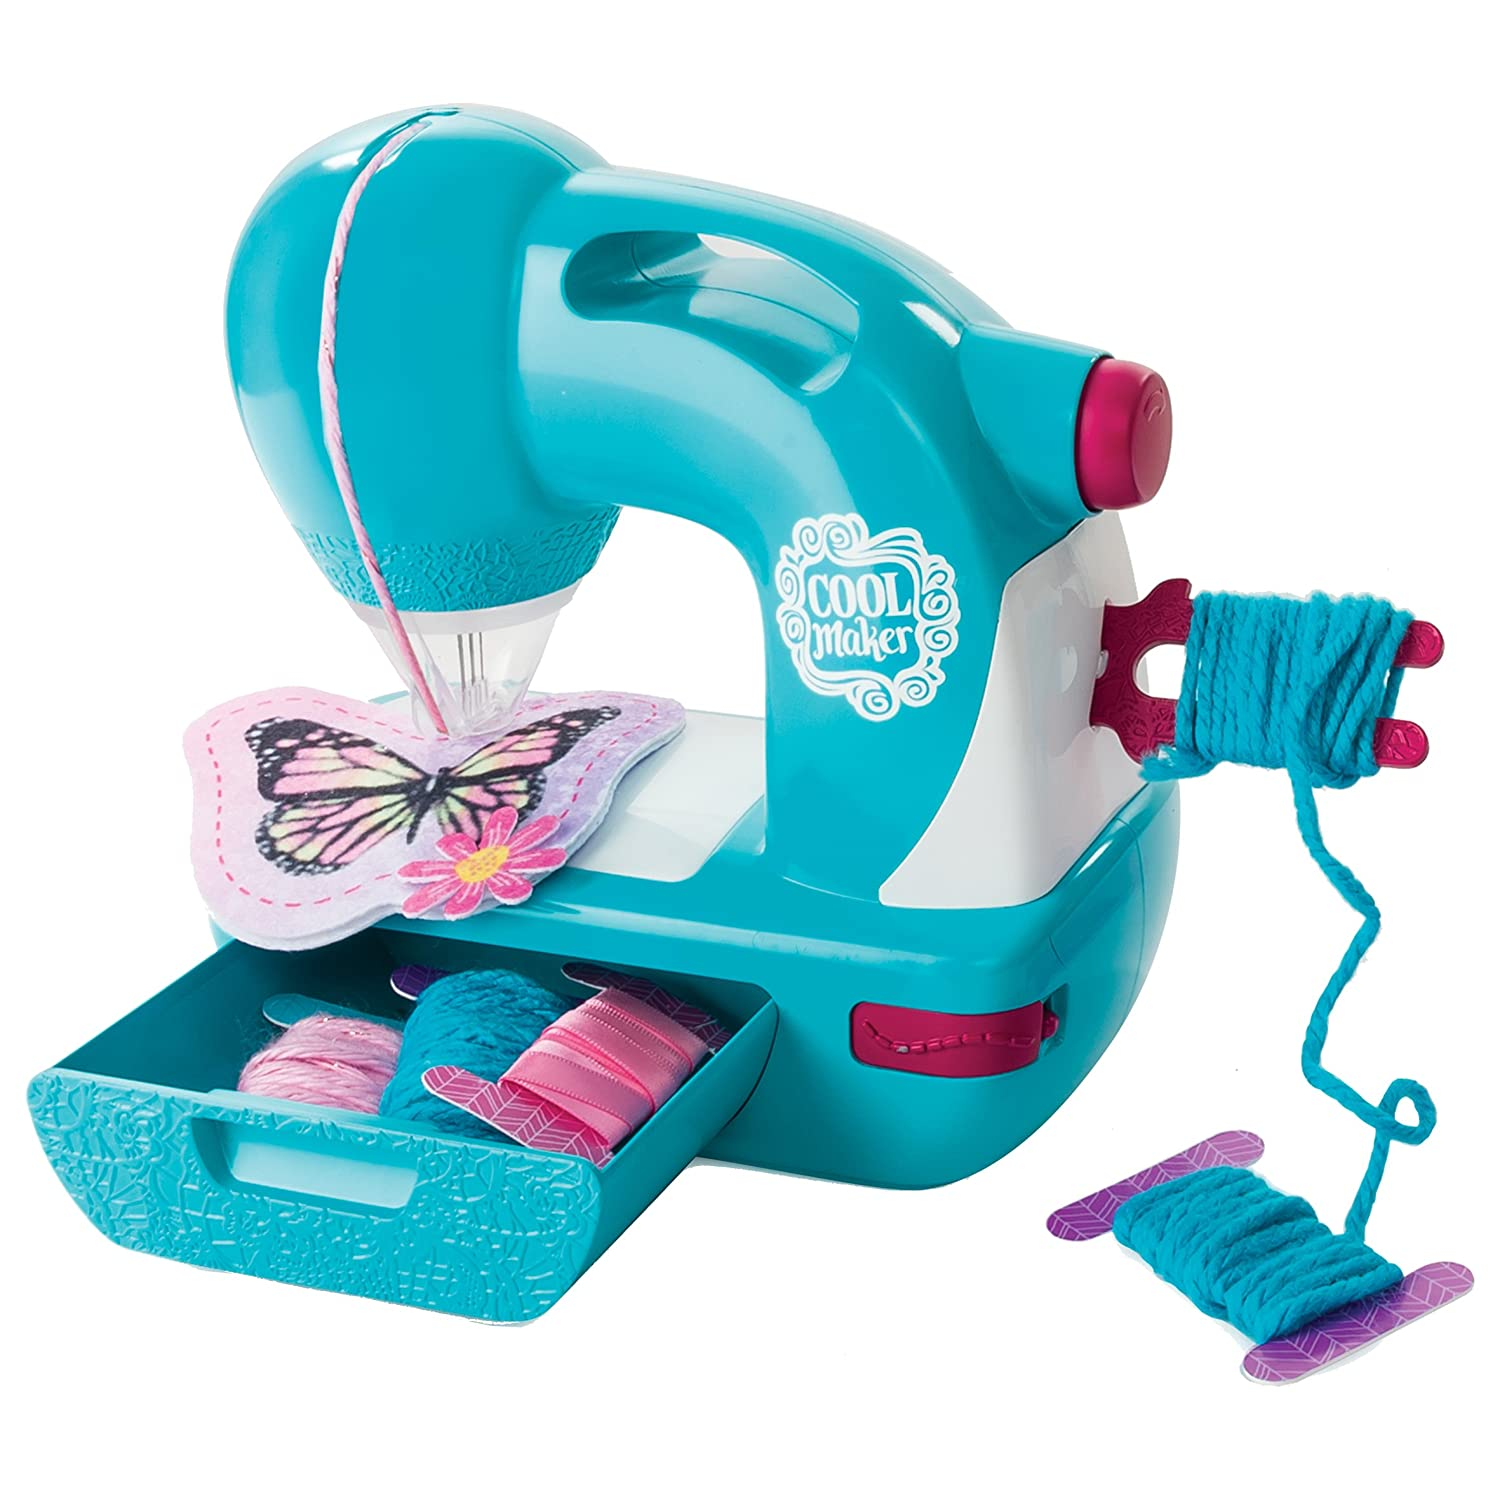 Sew Cool Sew n Style Craft Kit Amazon Toys & Games